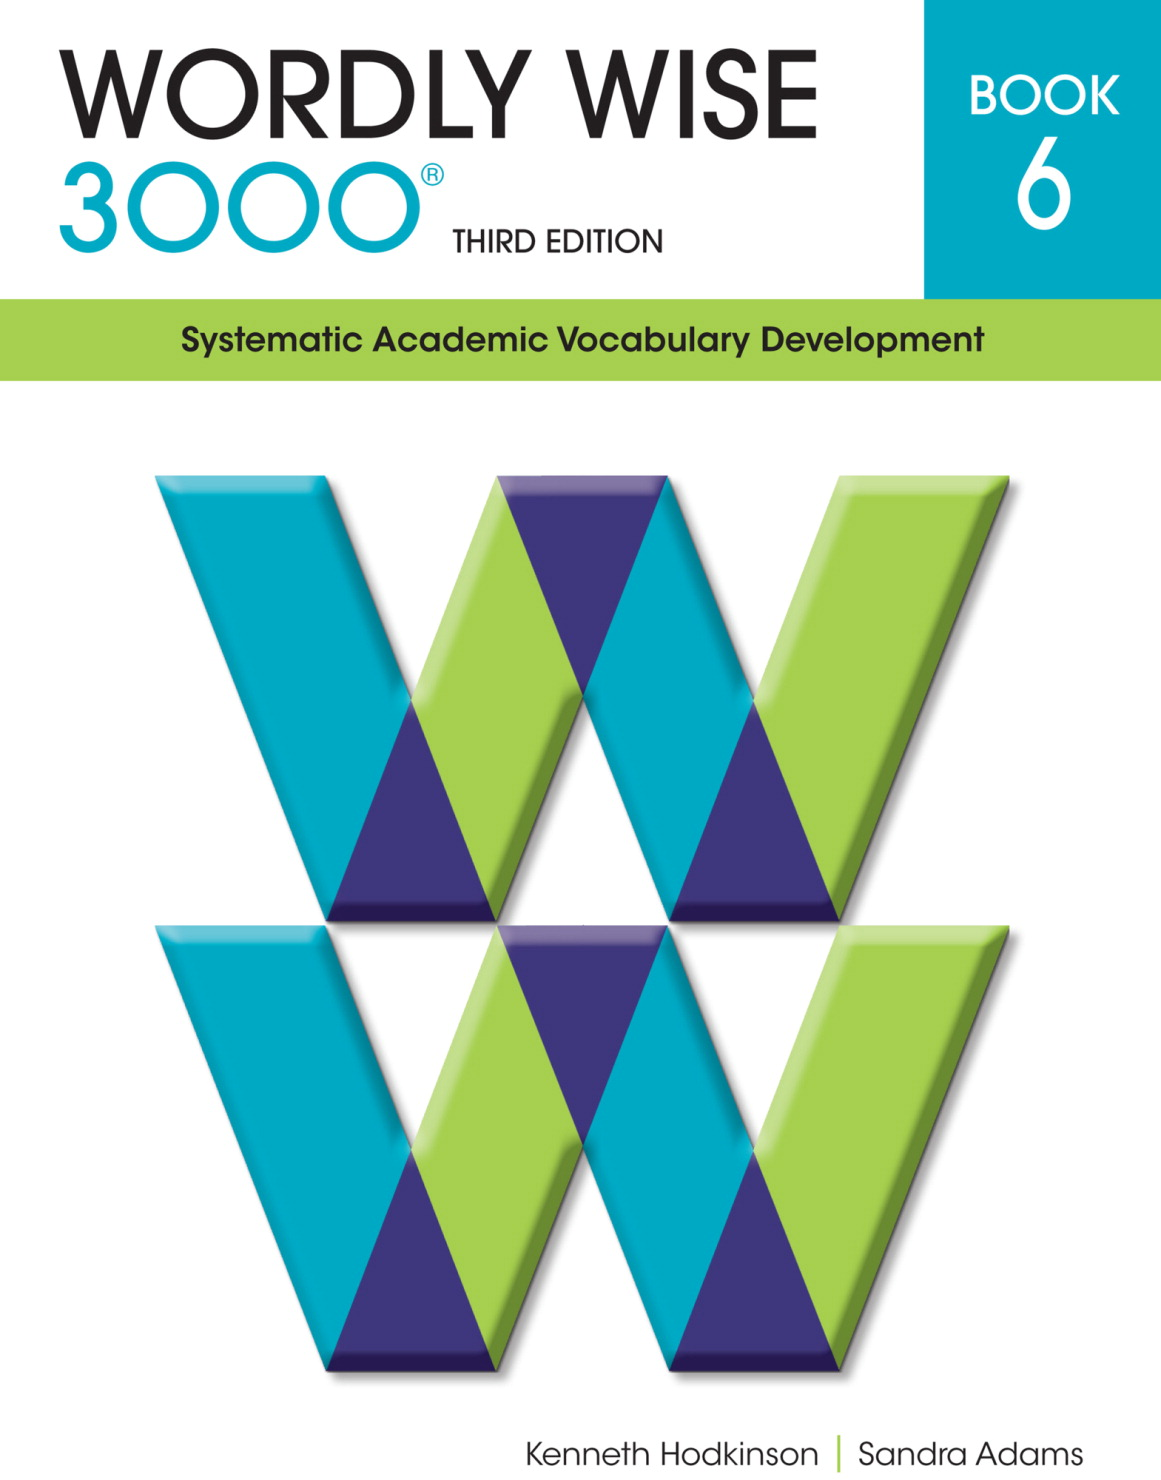 Student Book 6, Wordly Wise 3000 3rd edition - SCHOOL SPECIALTY ...